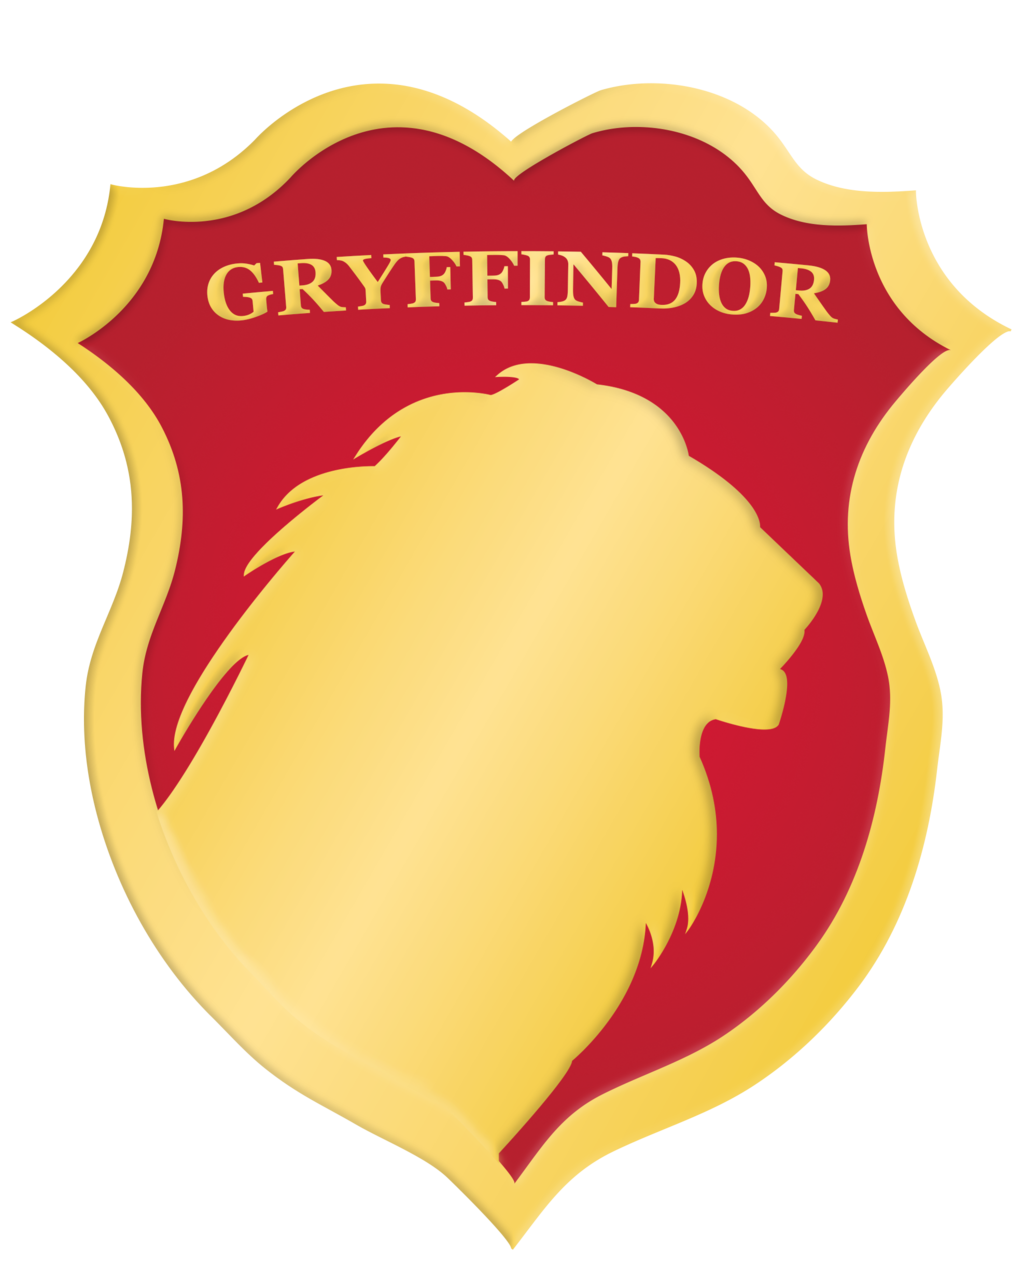 Gryffindor Crest Badge By Rainbowrenly.deviantart.com On @DeviantArt